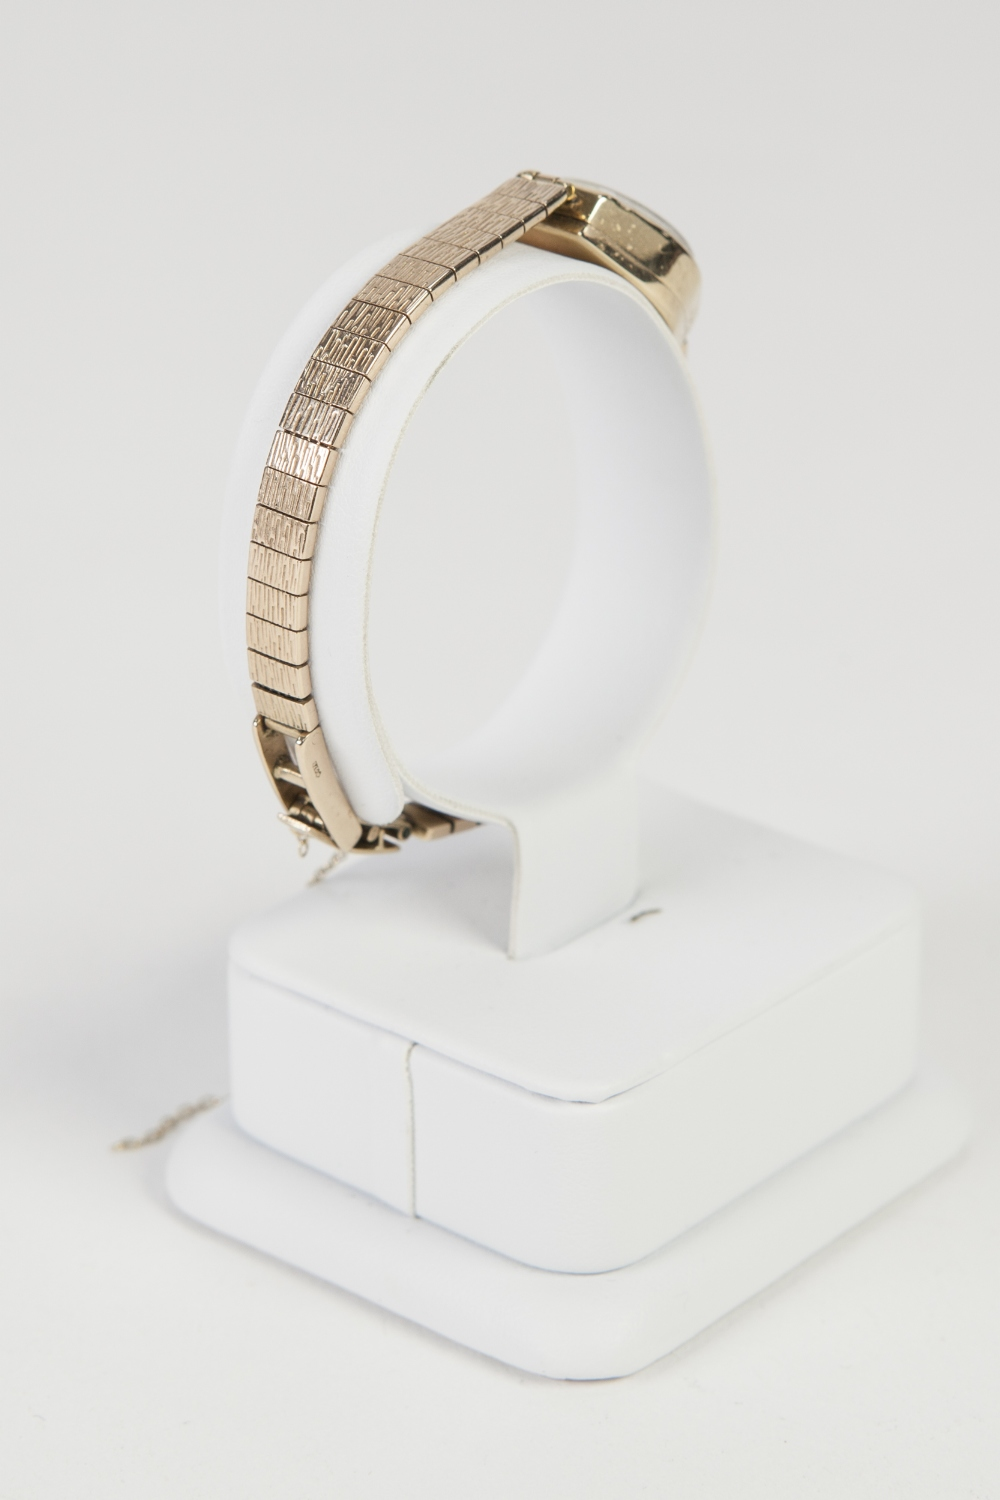 Lot 11 - LADY'S ROTARY 9ct GOLD WRISTWATCH with 15 jewel movement, small silvered circular Arabic dial and